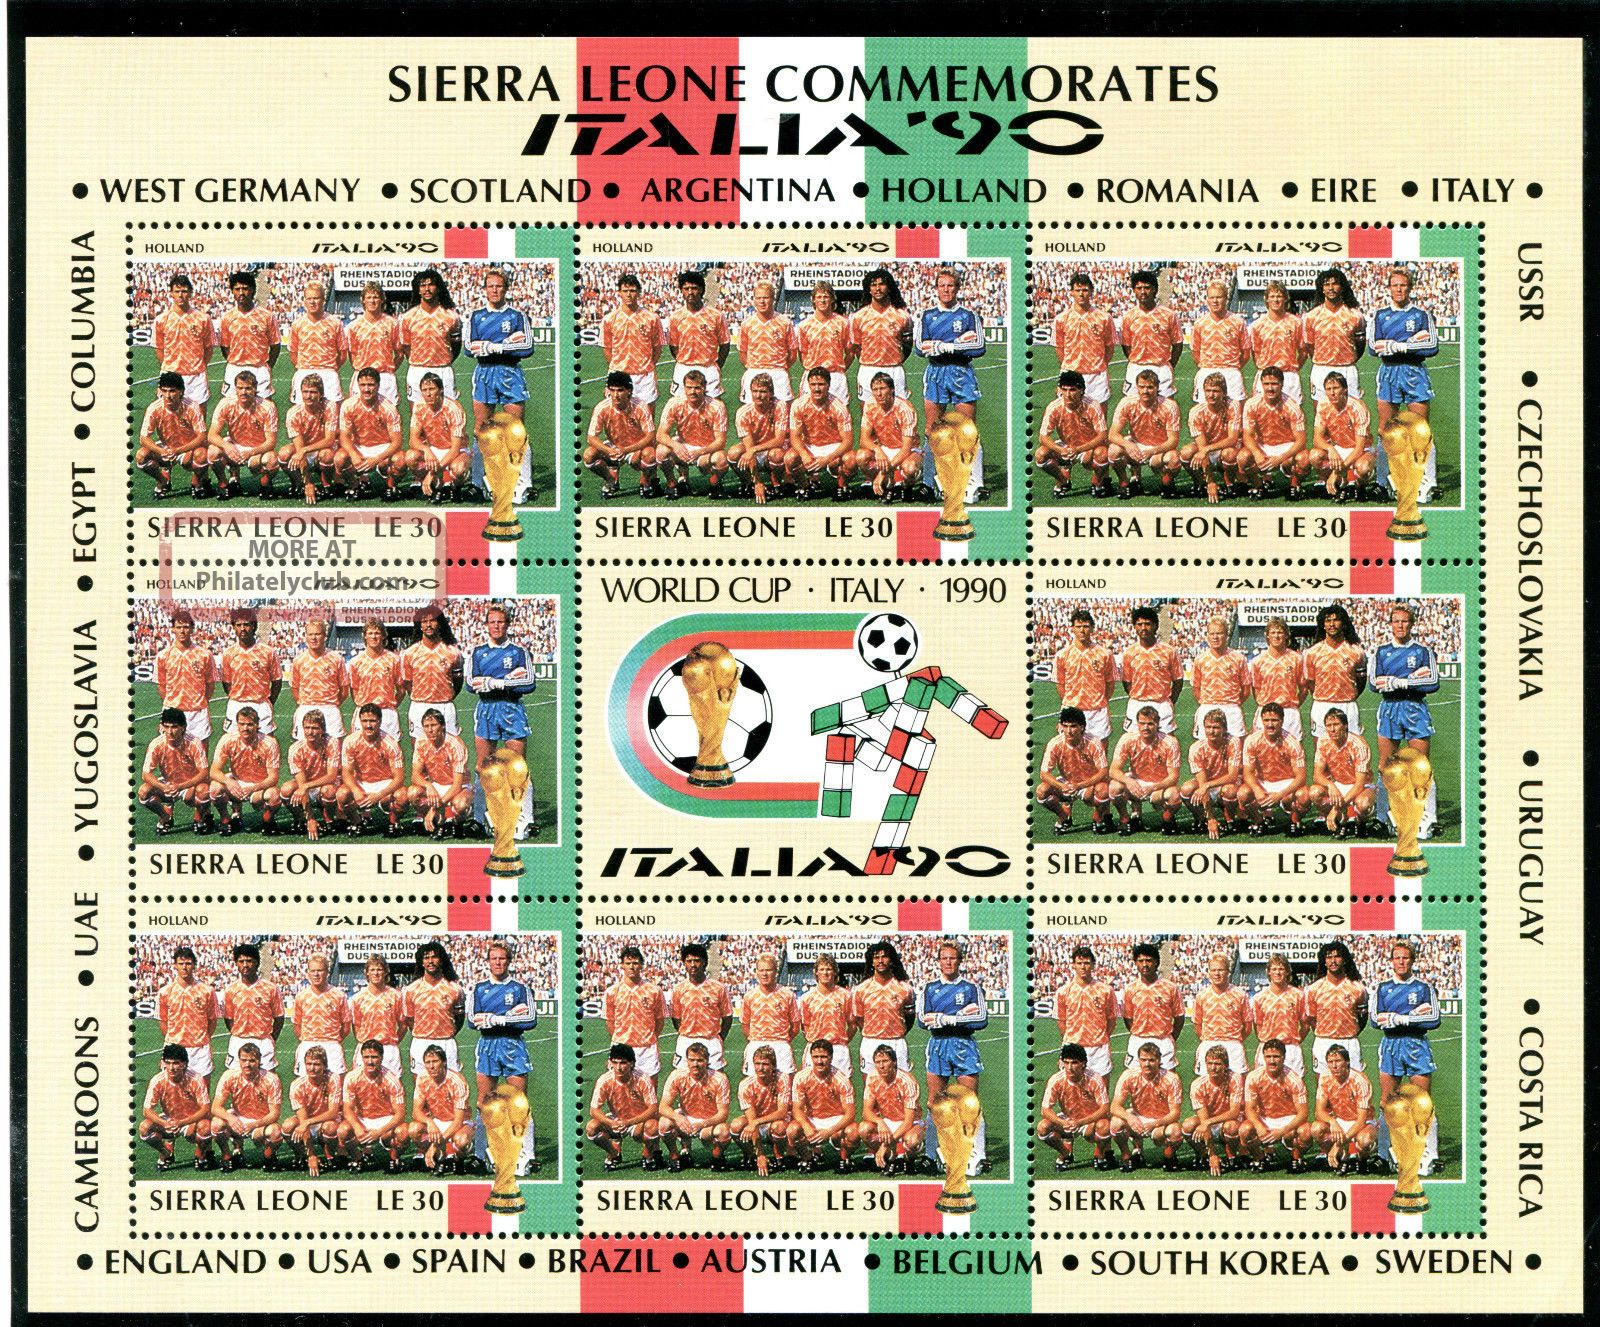 Sierra Leone 1990 Italy World Cup Sheetlet Holland Team Africa photo